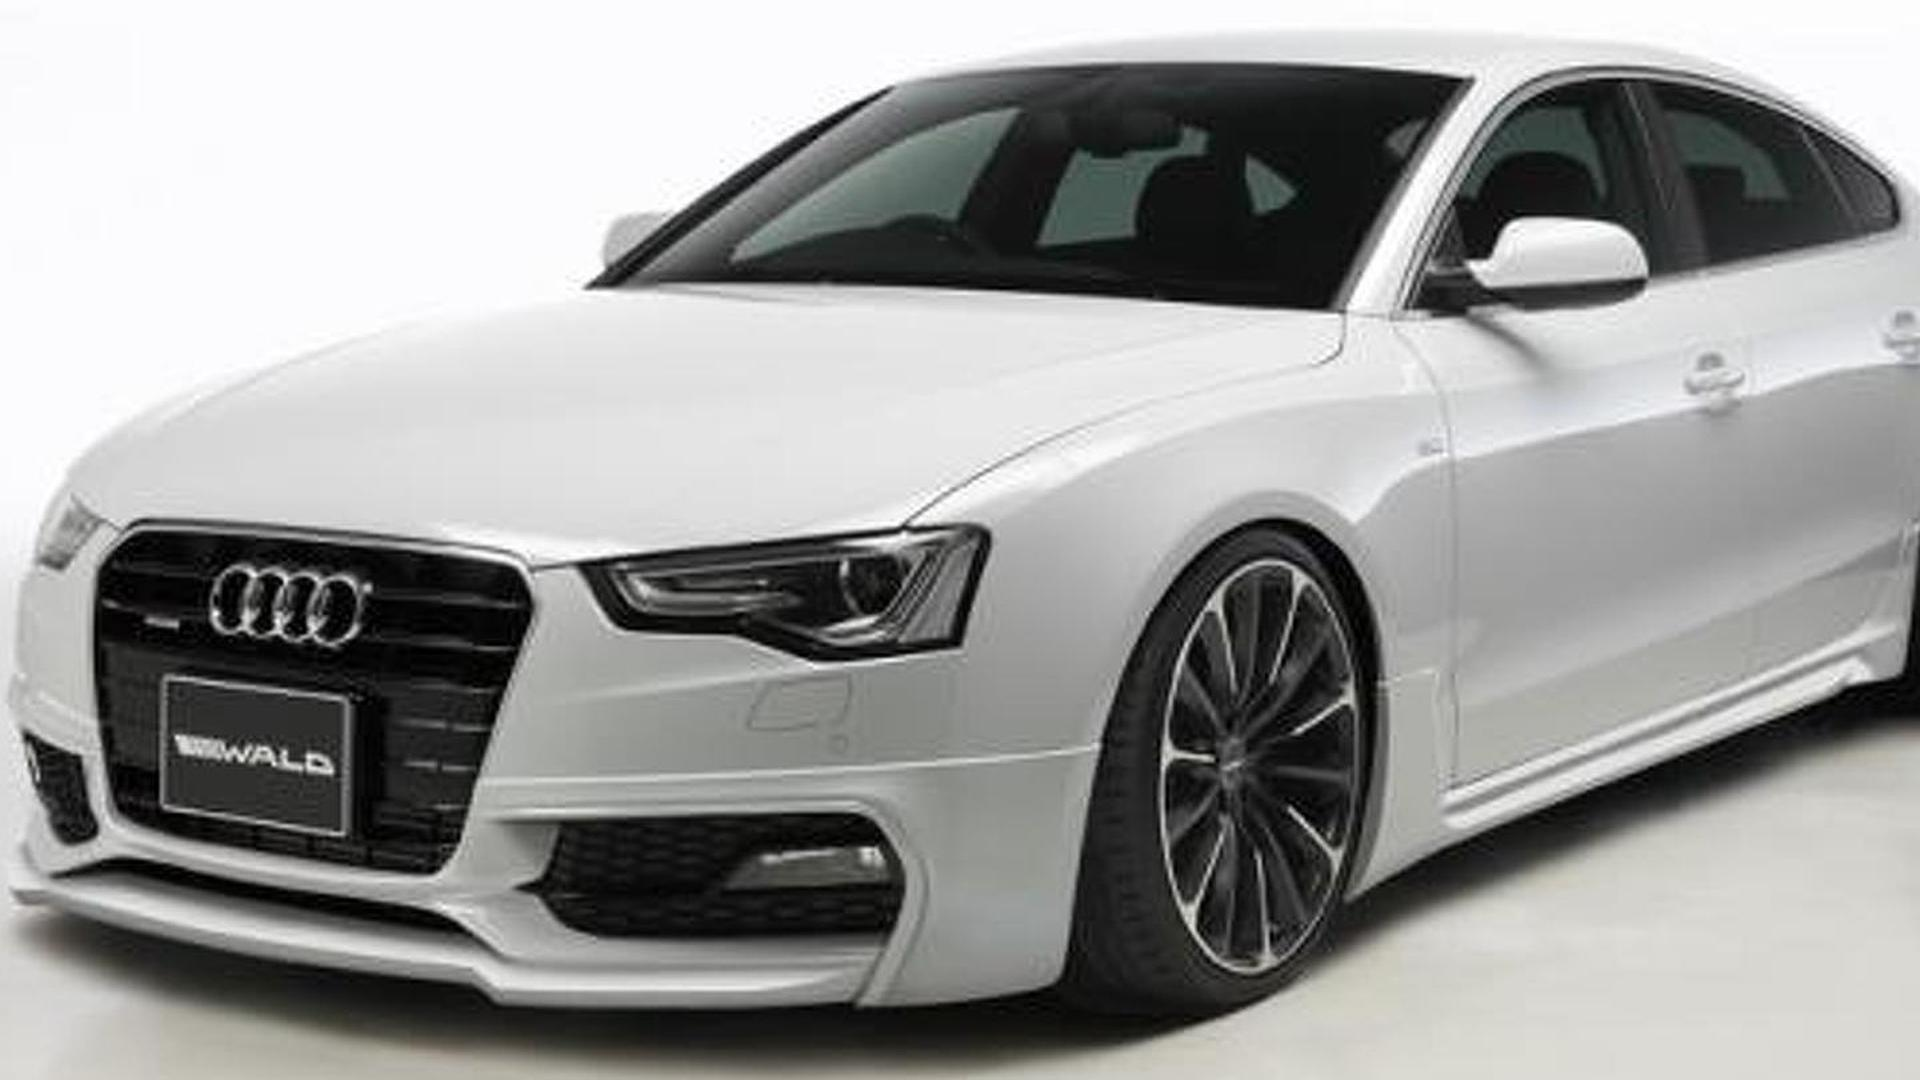 list and equipment the that audi includes various lines medium new an automotive pfaff model a offers extra concept functions used range standard with upgraded of sportback wide